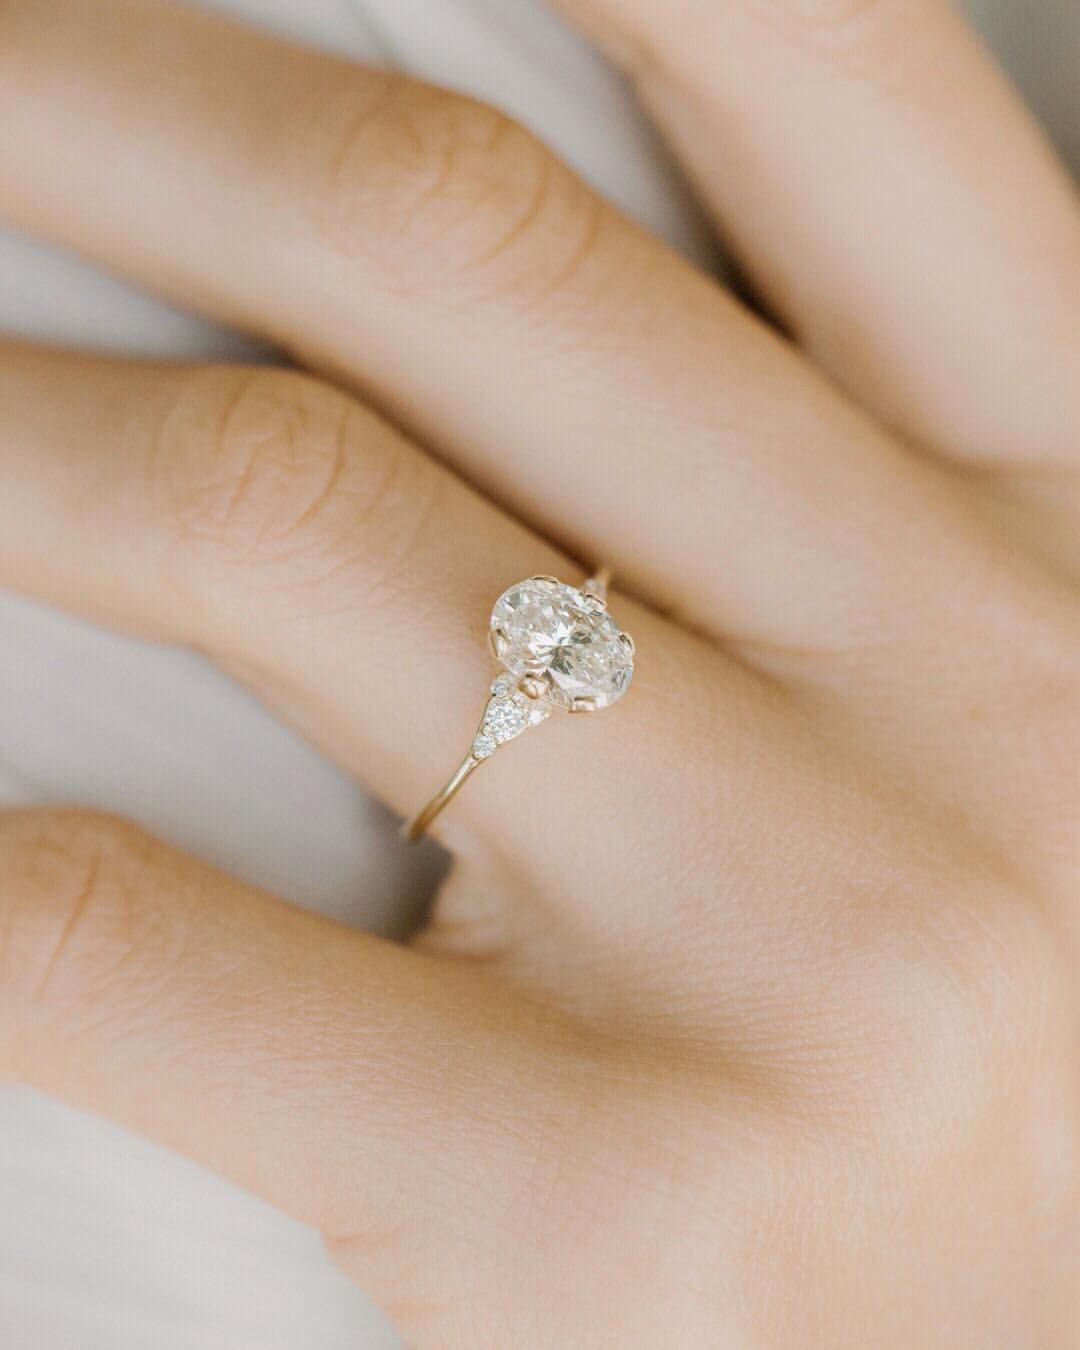 We finally did it! This new oval Lady's Slipper ring features the largest diamond yet at 1.2ct. Still with a low profile and delicate… #decorationengagement